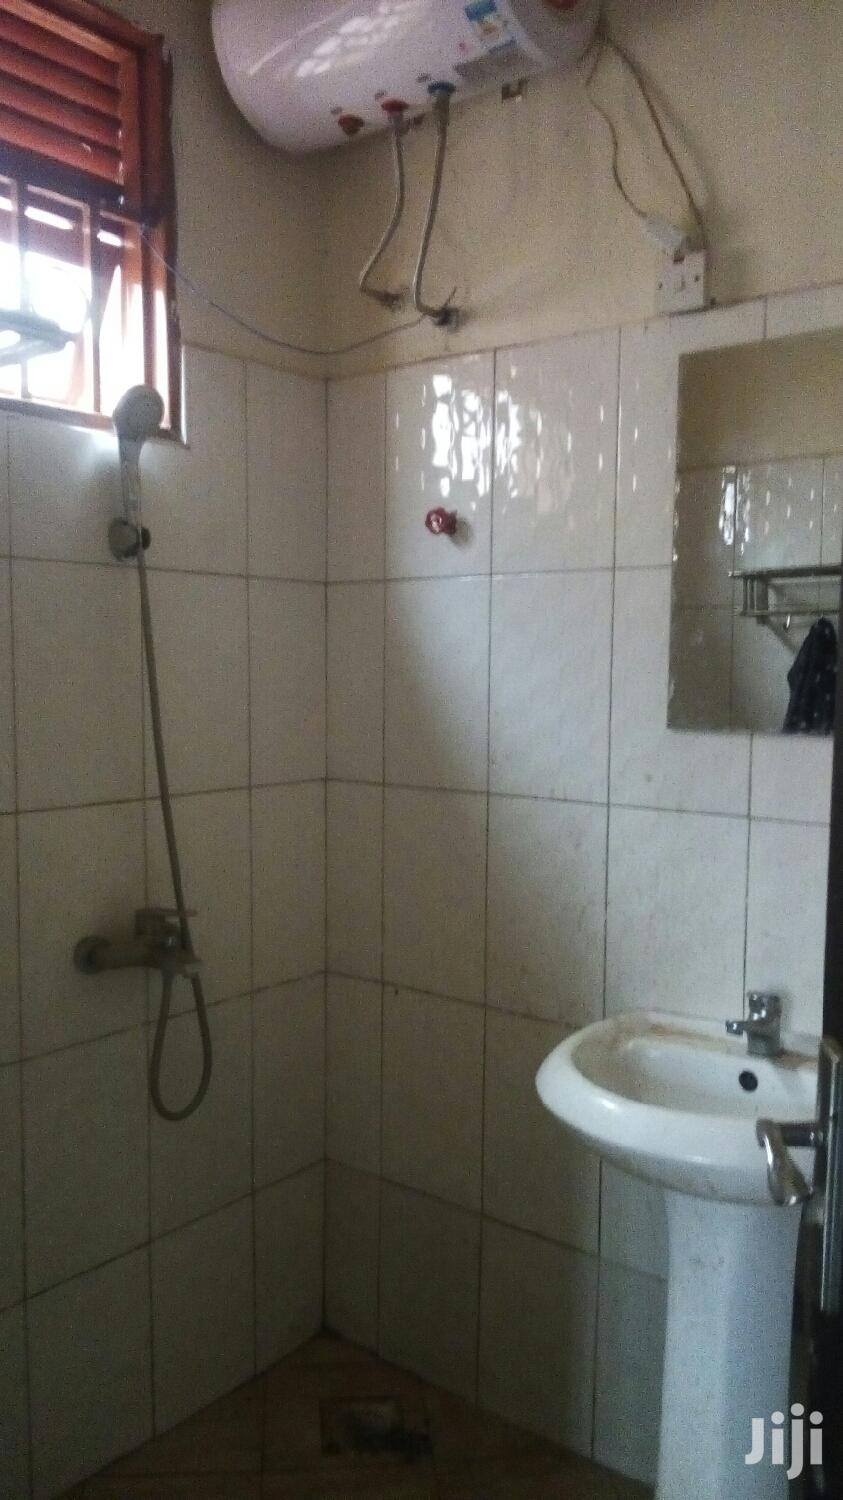 Finest 2bedroom 2bathroom Self Contained In Kyaliwajjala | Houses & Apartments For Rent for sale in Kampala, Uganda